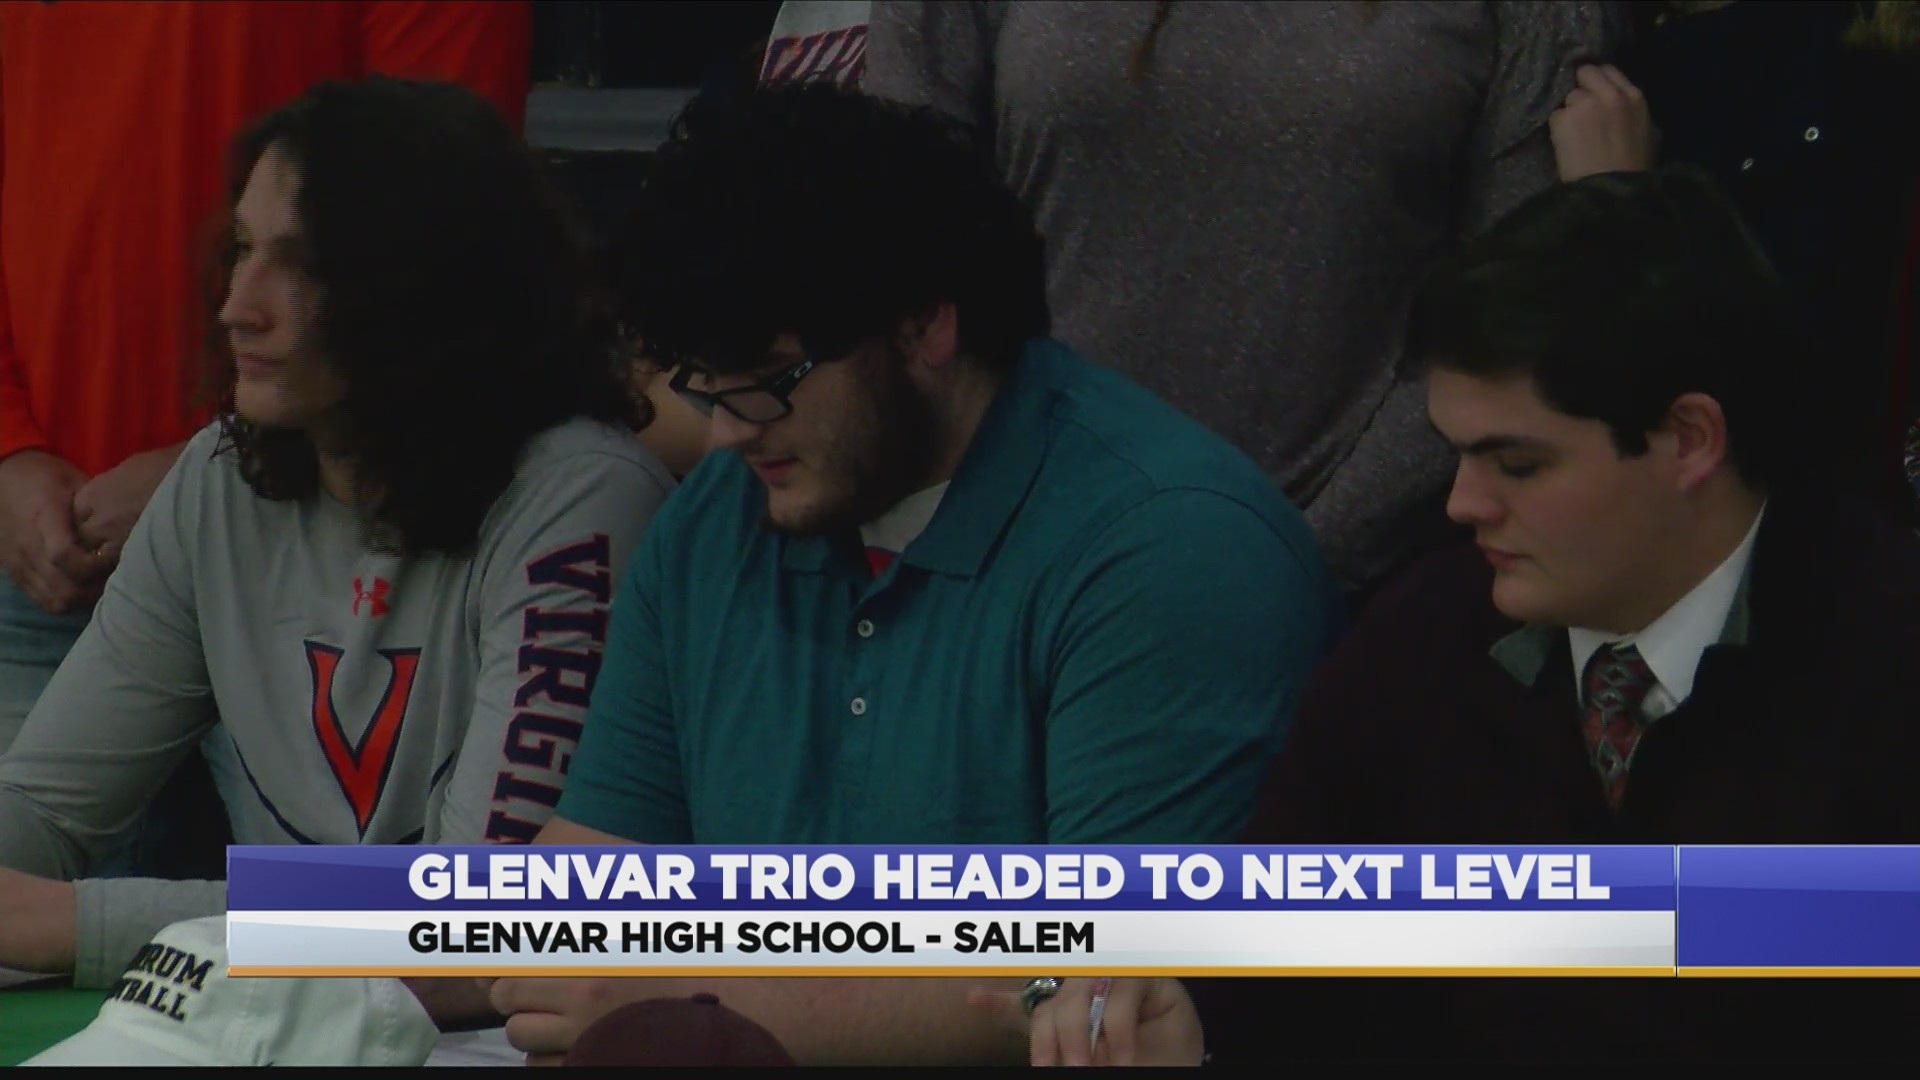 Glenvar Trio Headed To Next Level